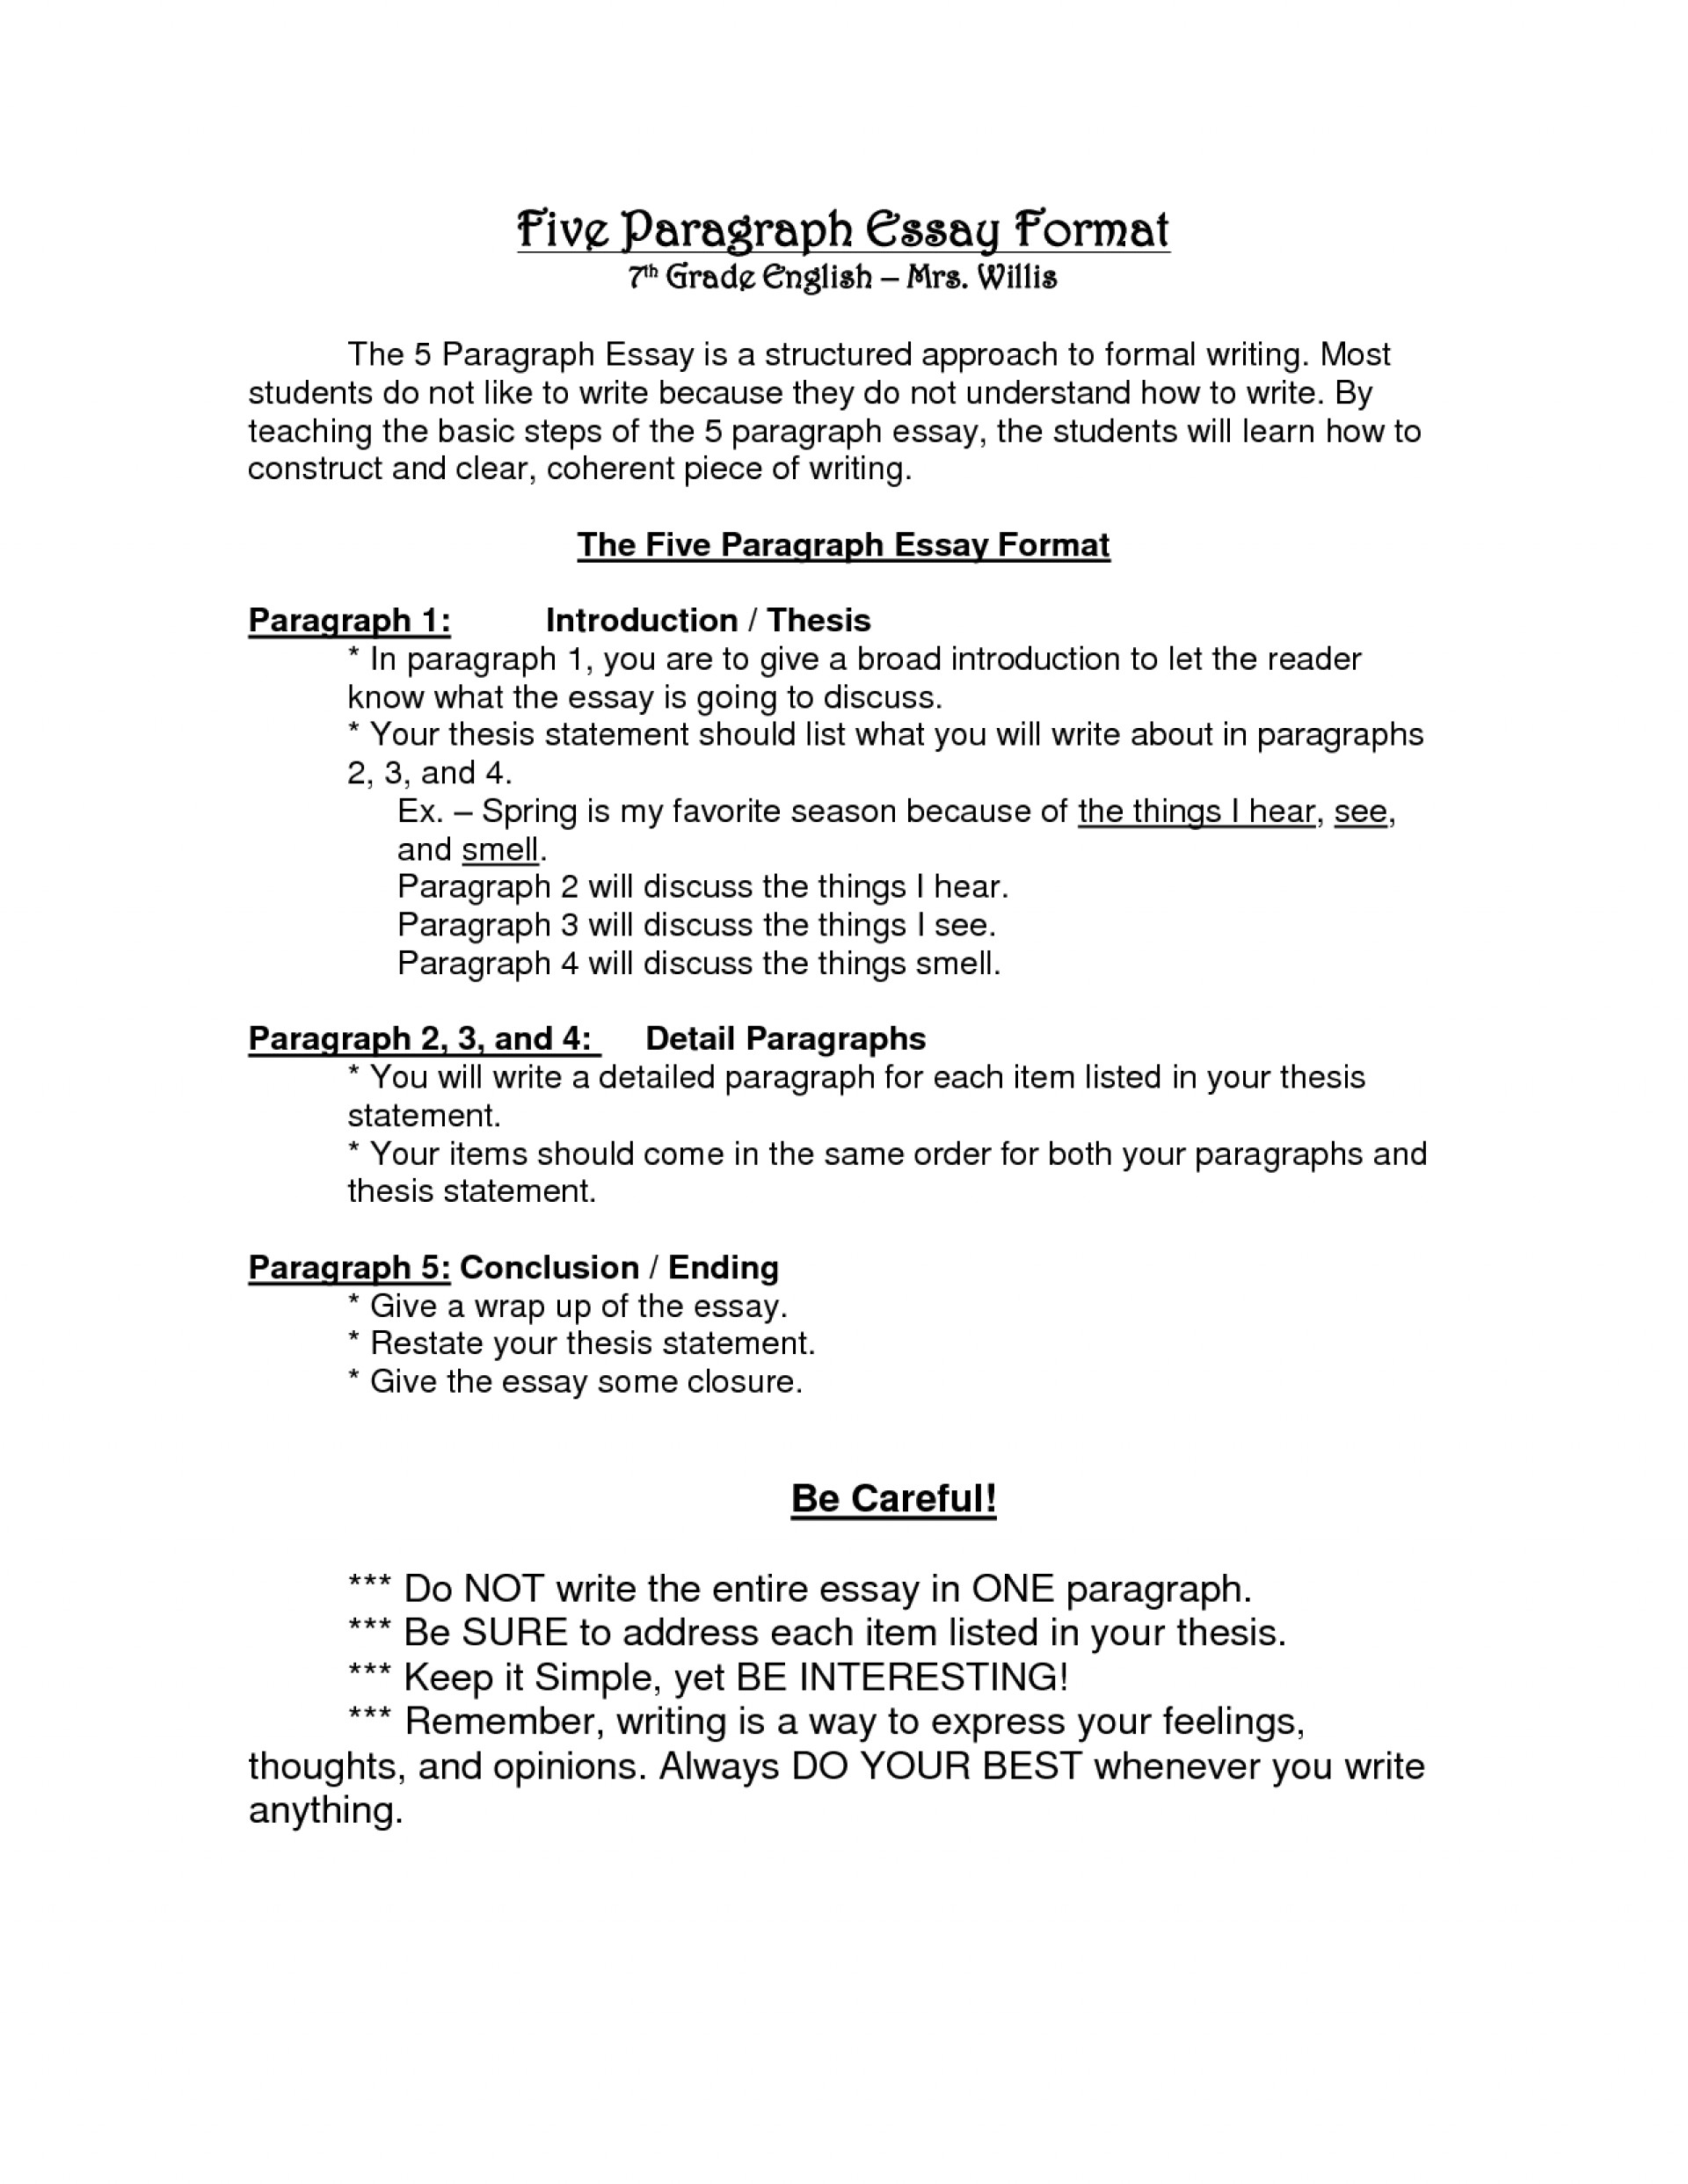 025 Paragraph Essay Outline Template Formats 96536 Fearsome 5 Persuasive Free 1920